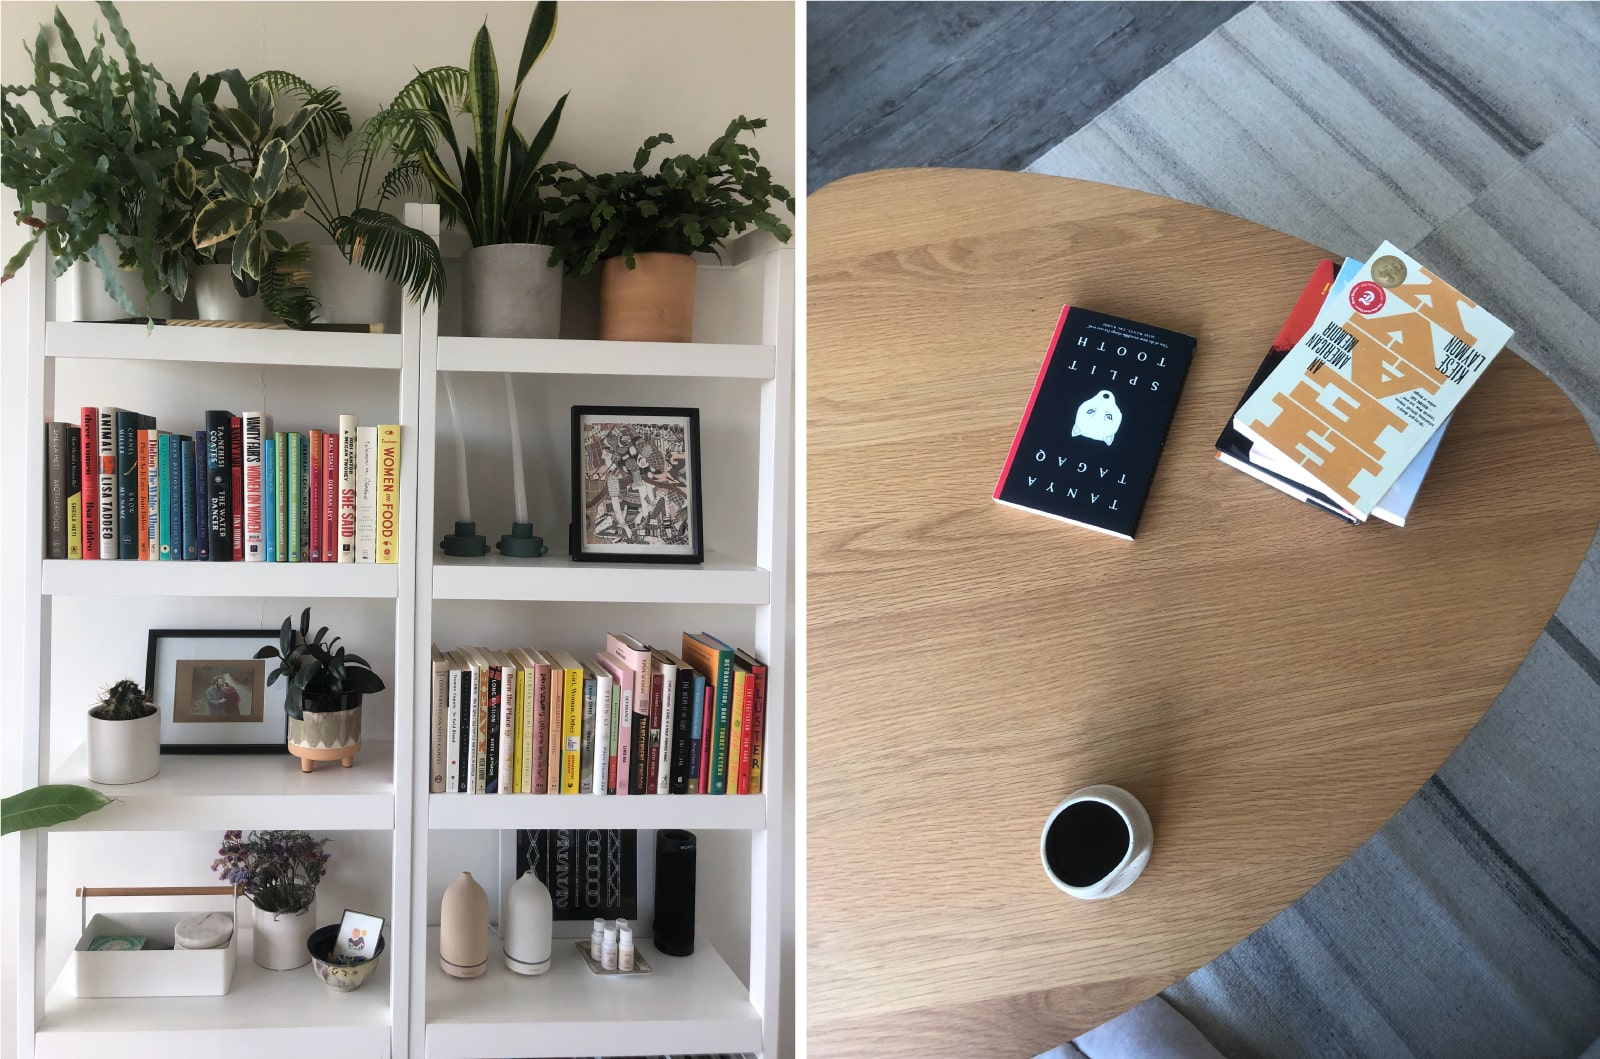 Coffee table and books